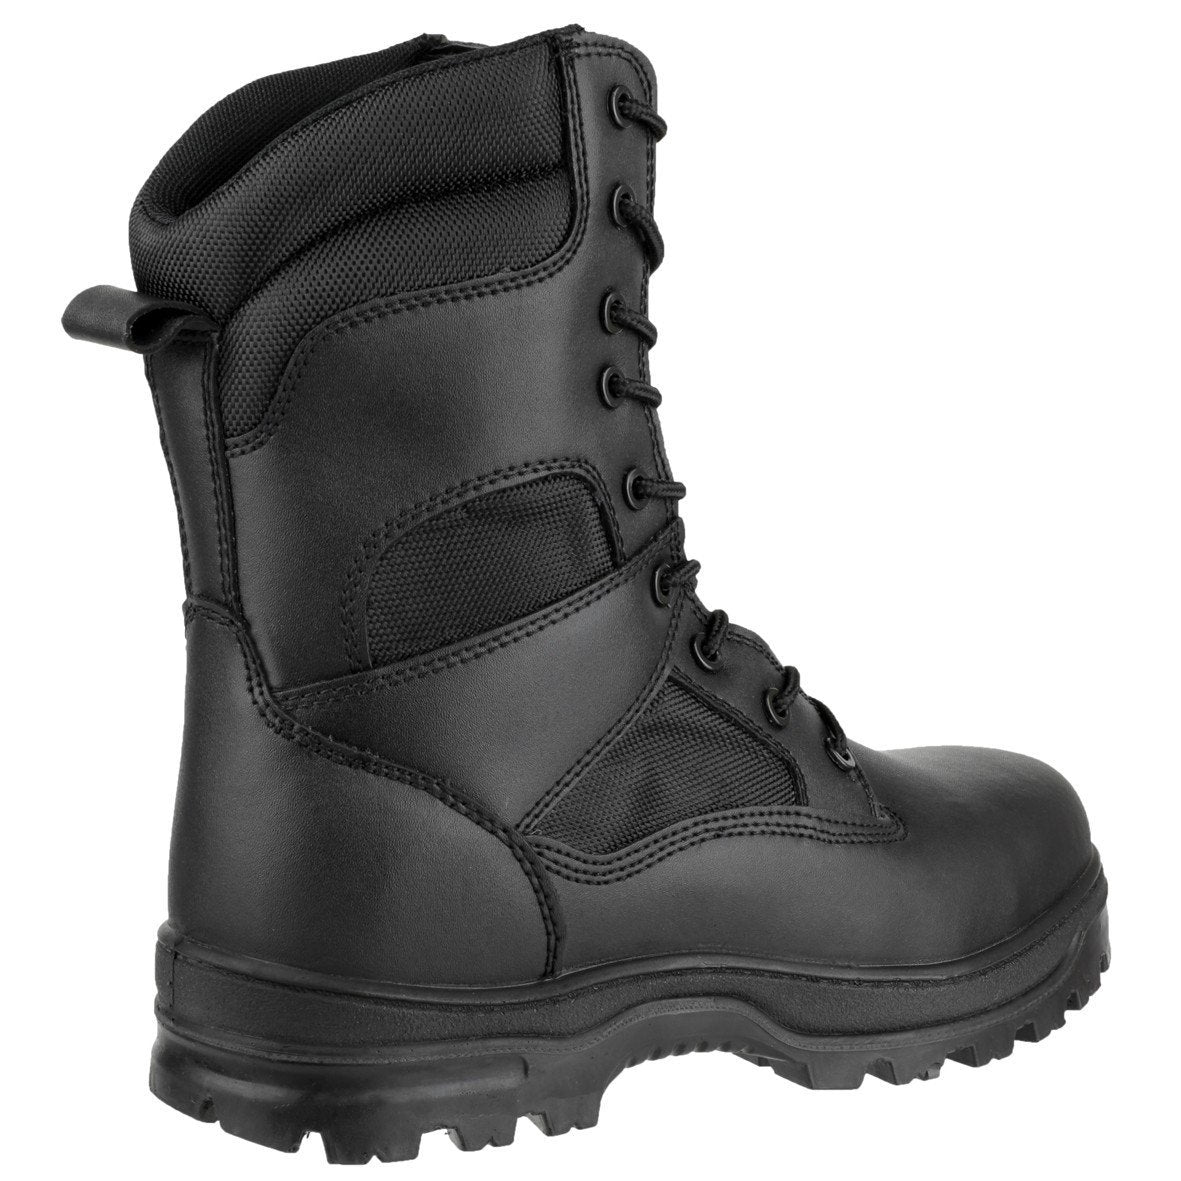 Amblers High Leg Safety Boots